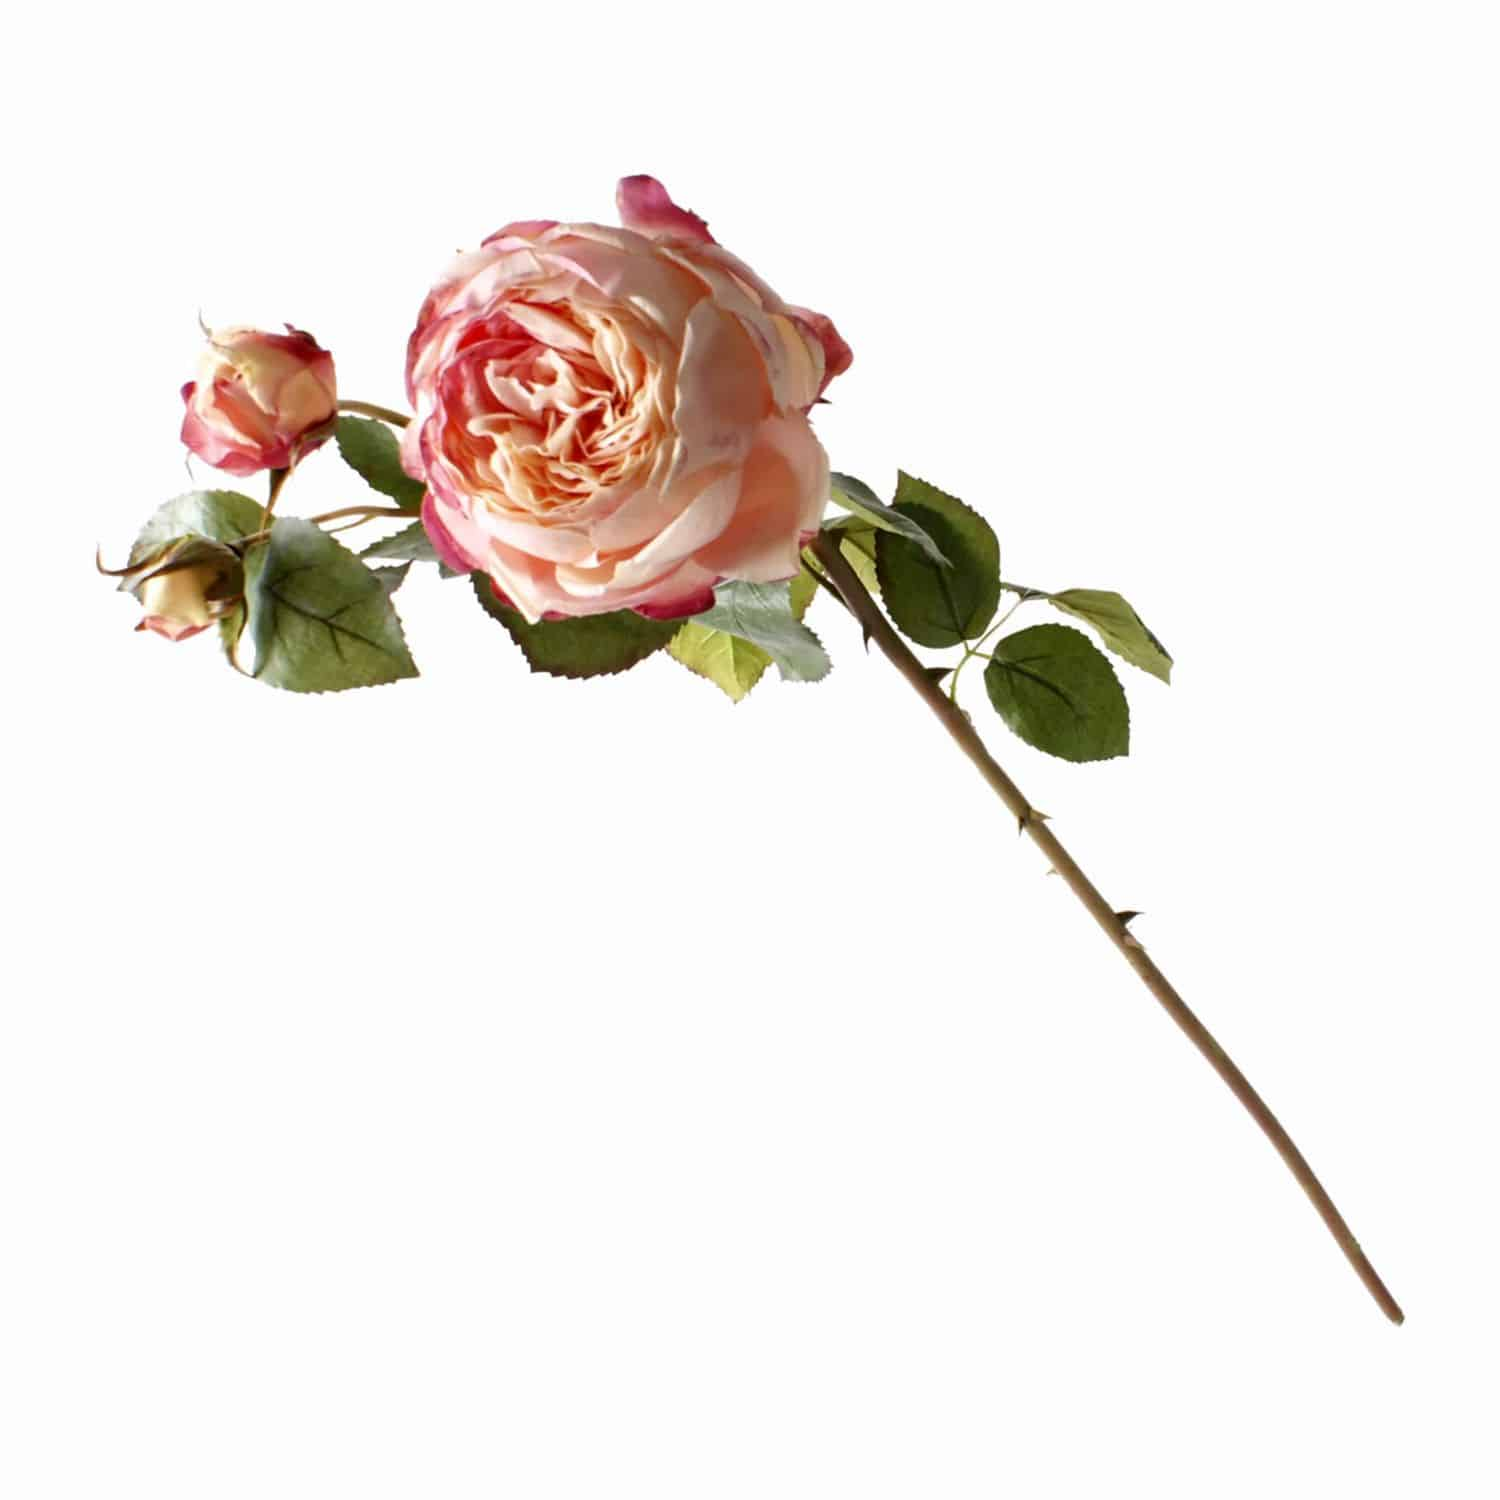 A British favourite faux rose and masterpiece of design. Includes budding heads